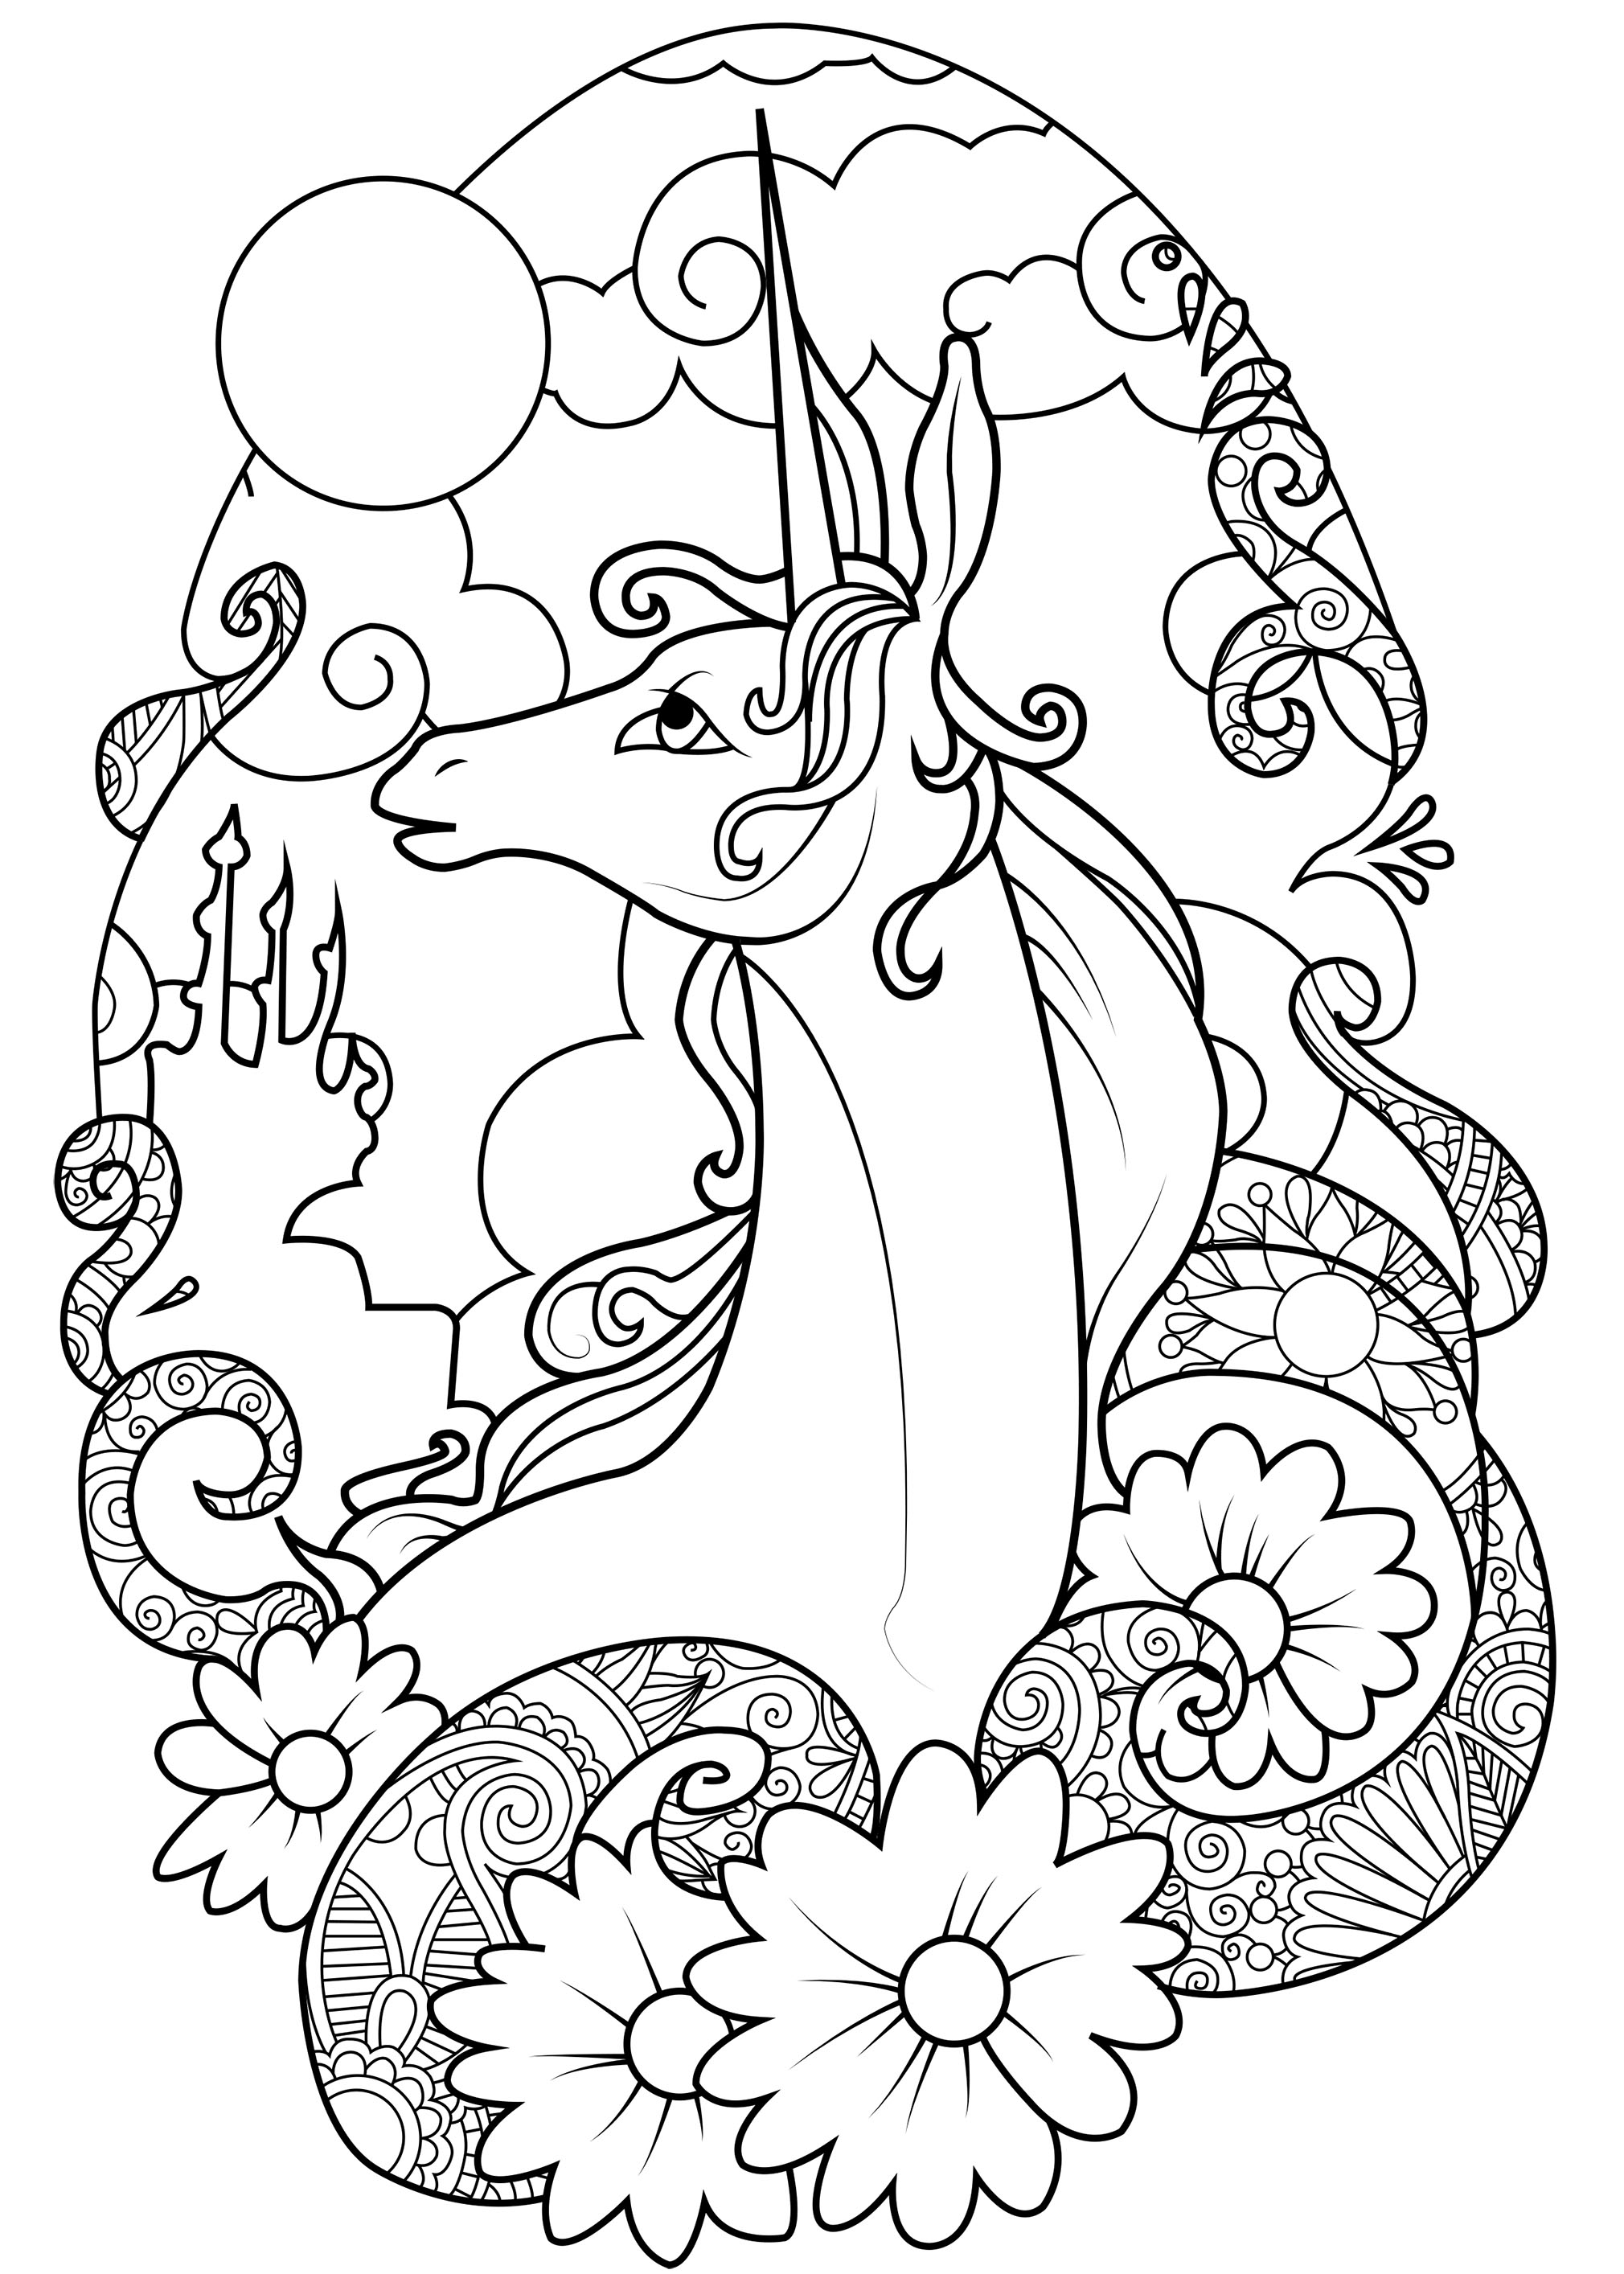 Coloring page fairy unicorn graceful unicorn in the moonlight surrounded by flowers